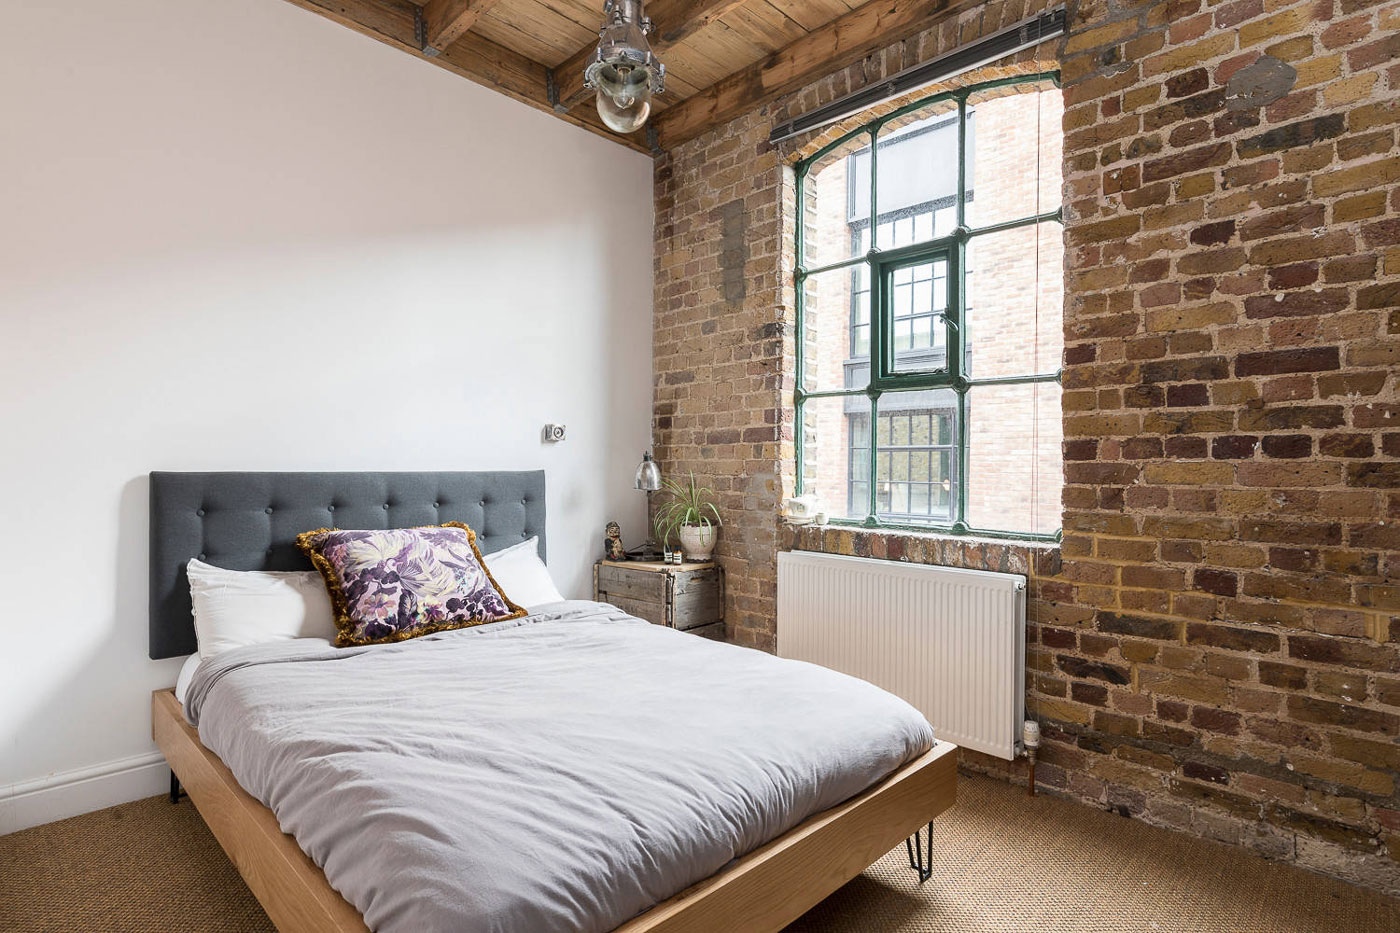 Brick walls, bedroom